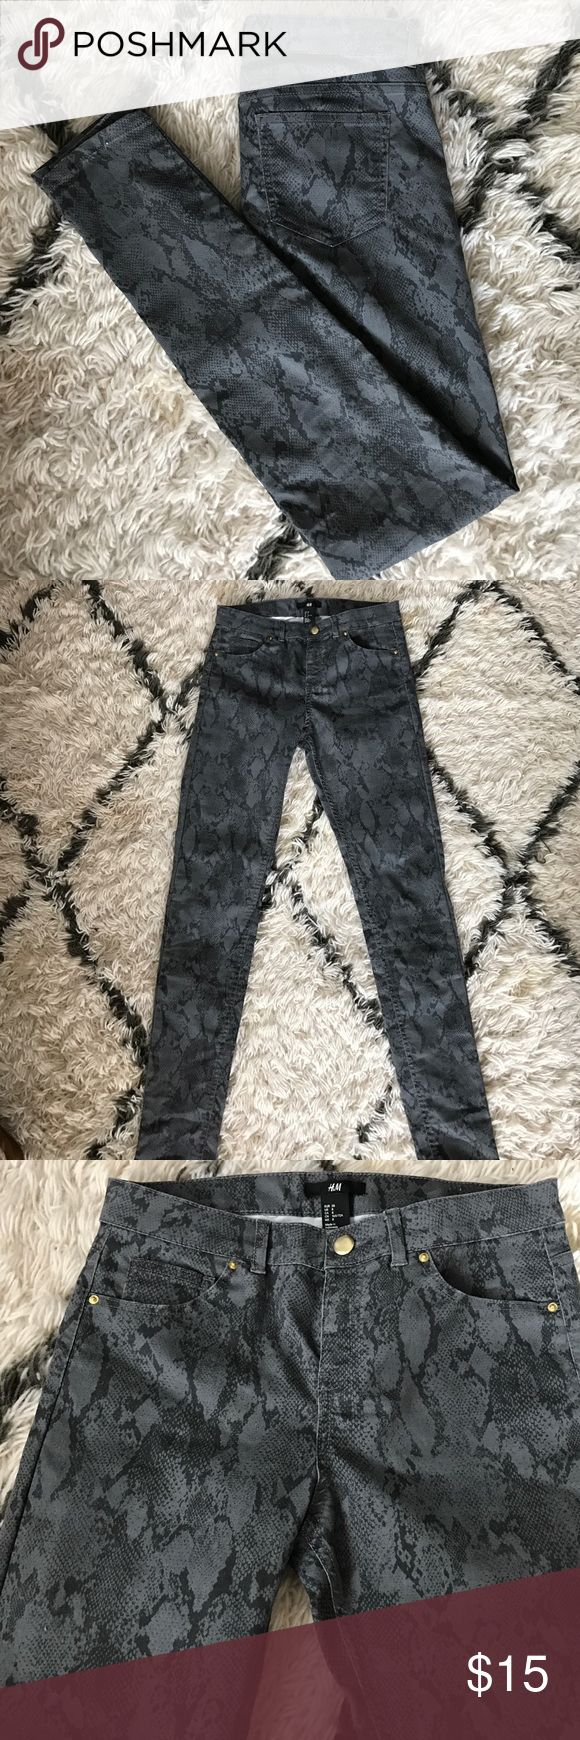 H&M Python Print Pants NWOT Dark gray Python Print pants from H&M. Marked as a size 8 but really fits a size 4. H&M Pants Skinny